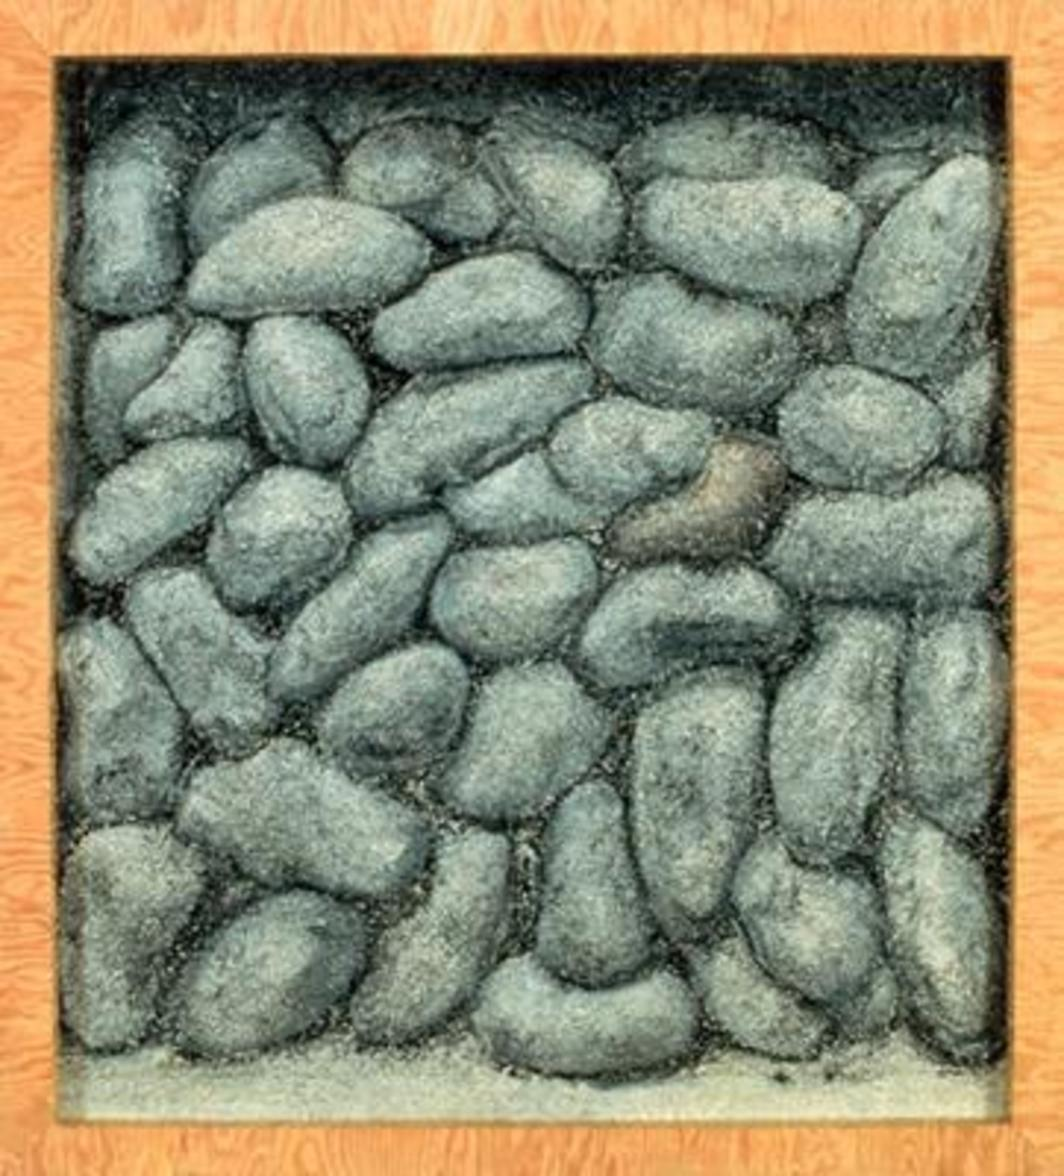 "Richard Artschwager, Untitled (Potatoes II), 1997, acrylic on Celotex, 37 x 34""."